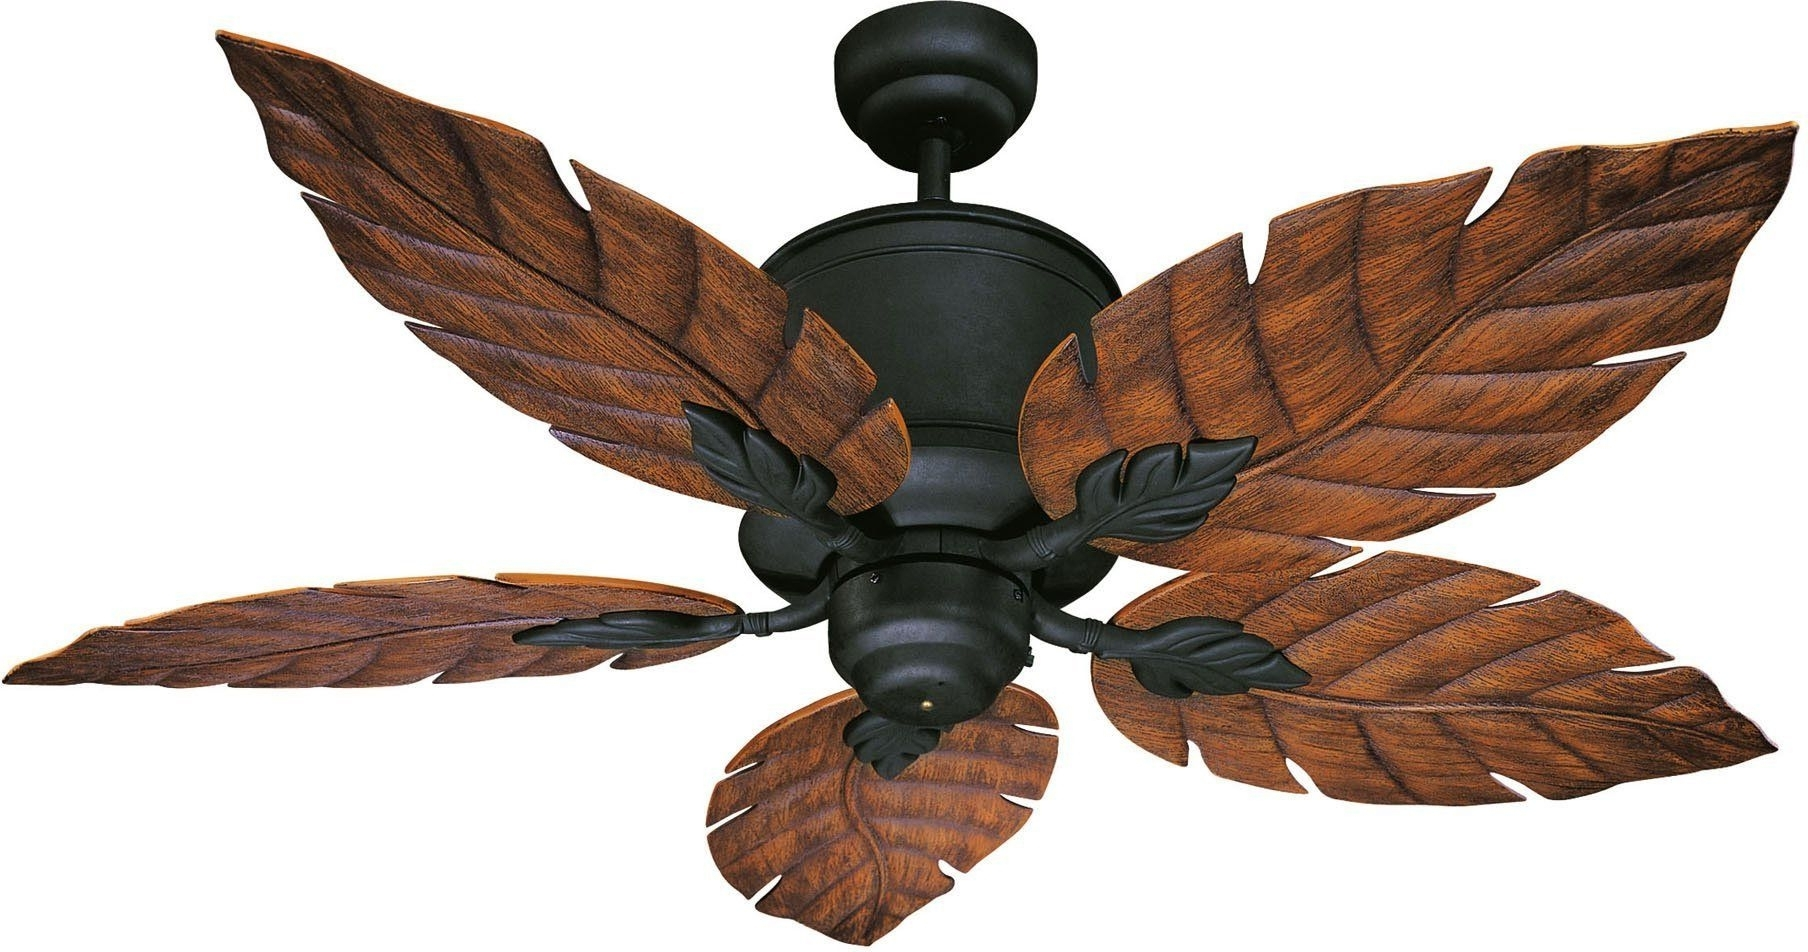 "Horseshoe Black Portico Portico 52"" Five Blade Outdoor Ceiling Fan Within Famous Outdoor Ceiling Fans With Palm Blades (View 7 of 20)"